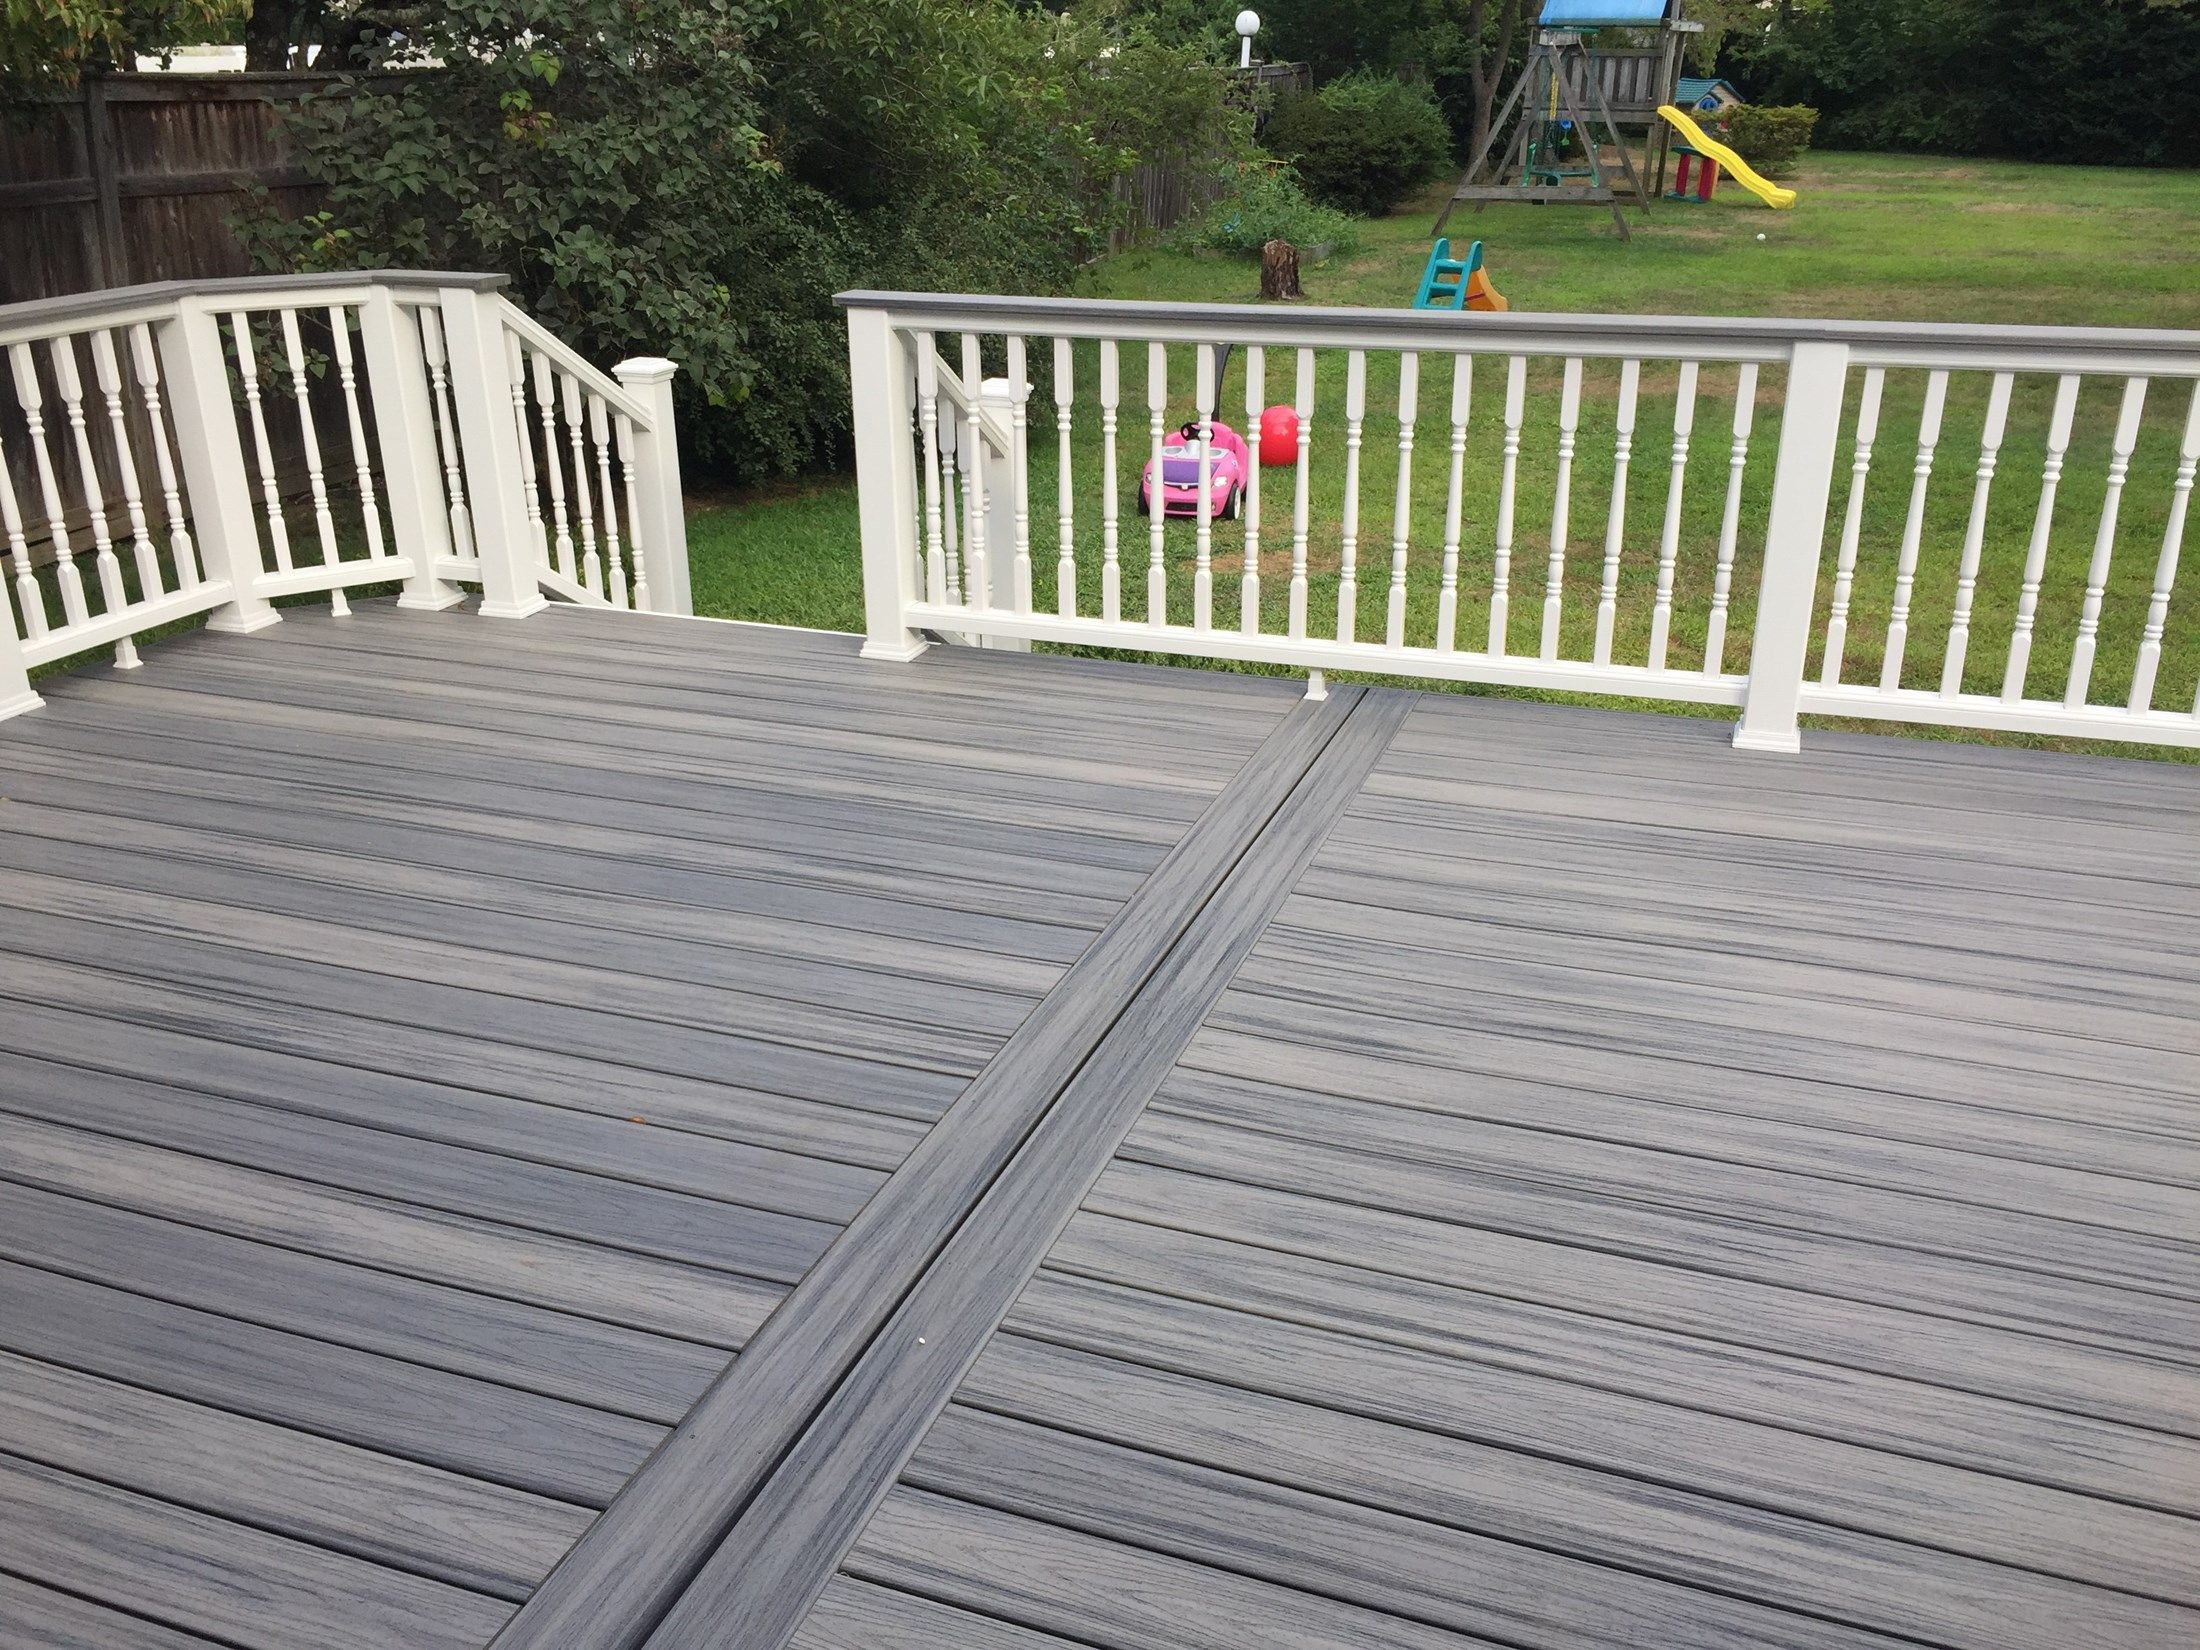 We Like The Look Where The Boards Are Lined Up And Divided In Even Sections With A Frame Like Seen Here In 2020 Patio Deck Designs Deck Designs Backyard Deck Design